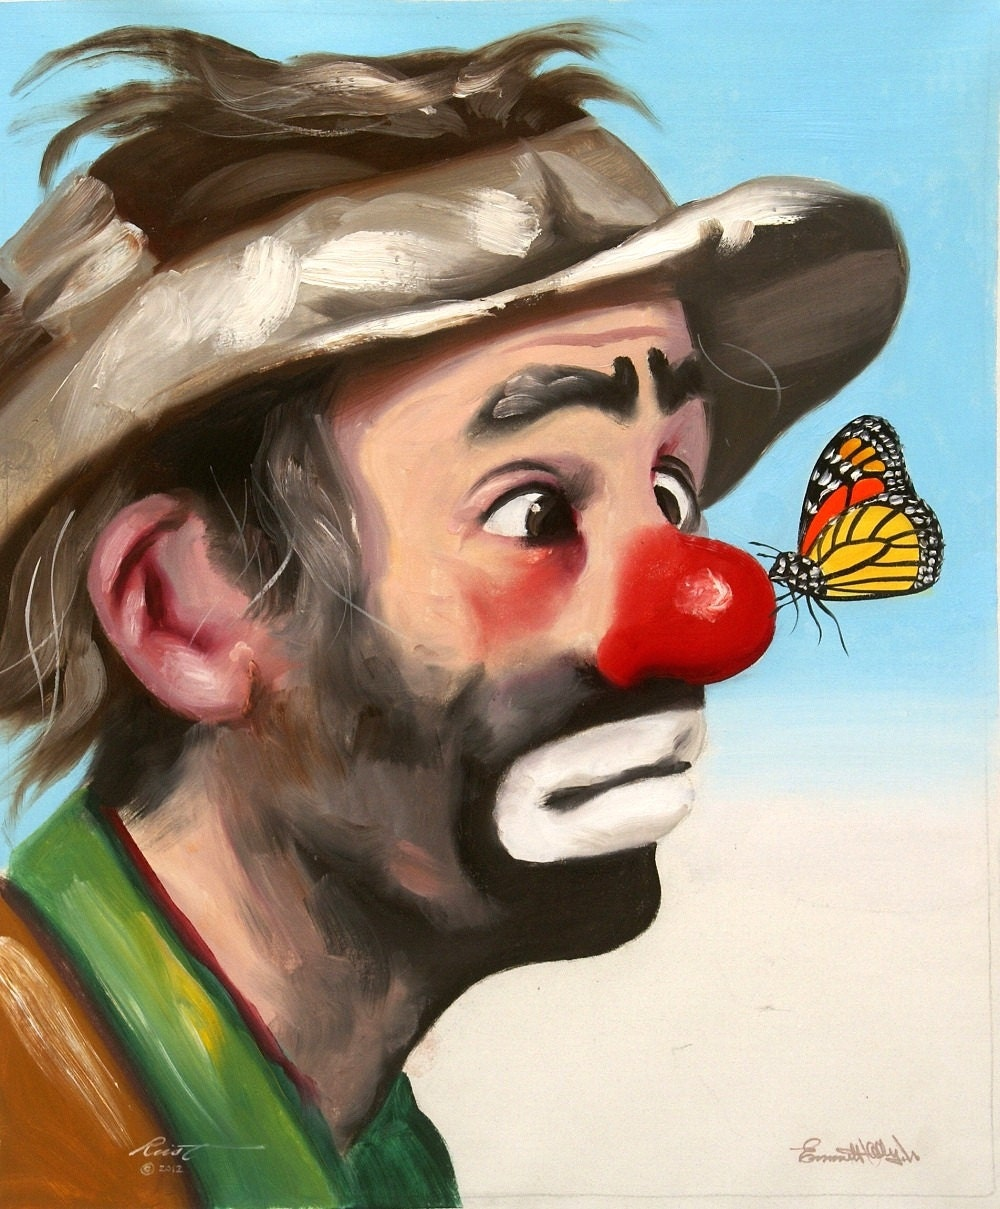 Pictures of Famous Clown Oil Paintings - #rock-cafe